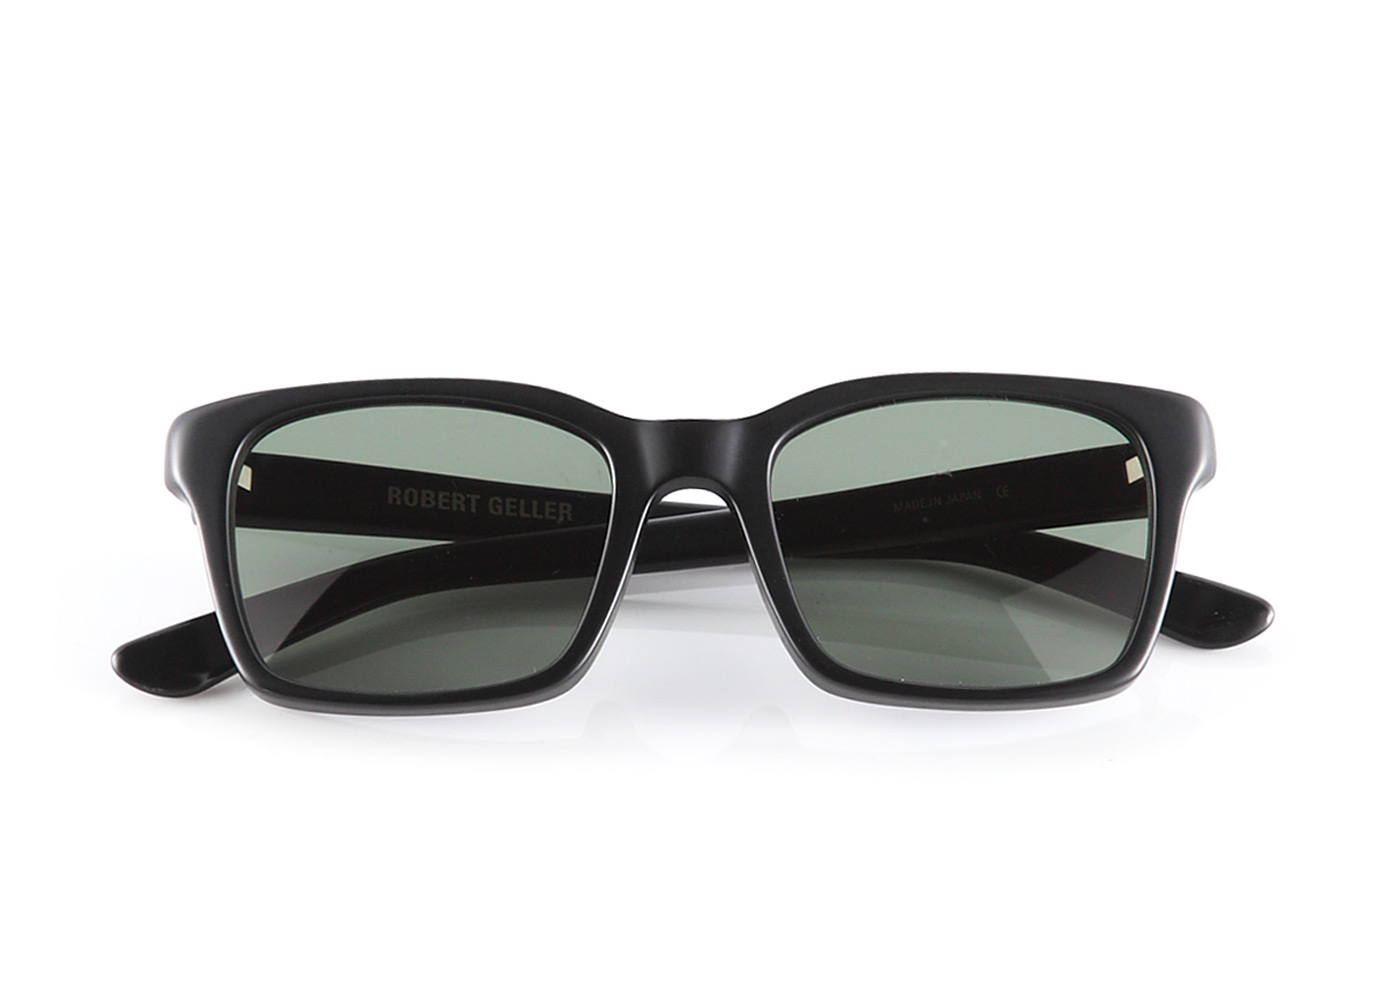 robert-geller-sunglasses-01